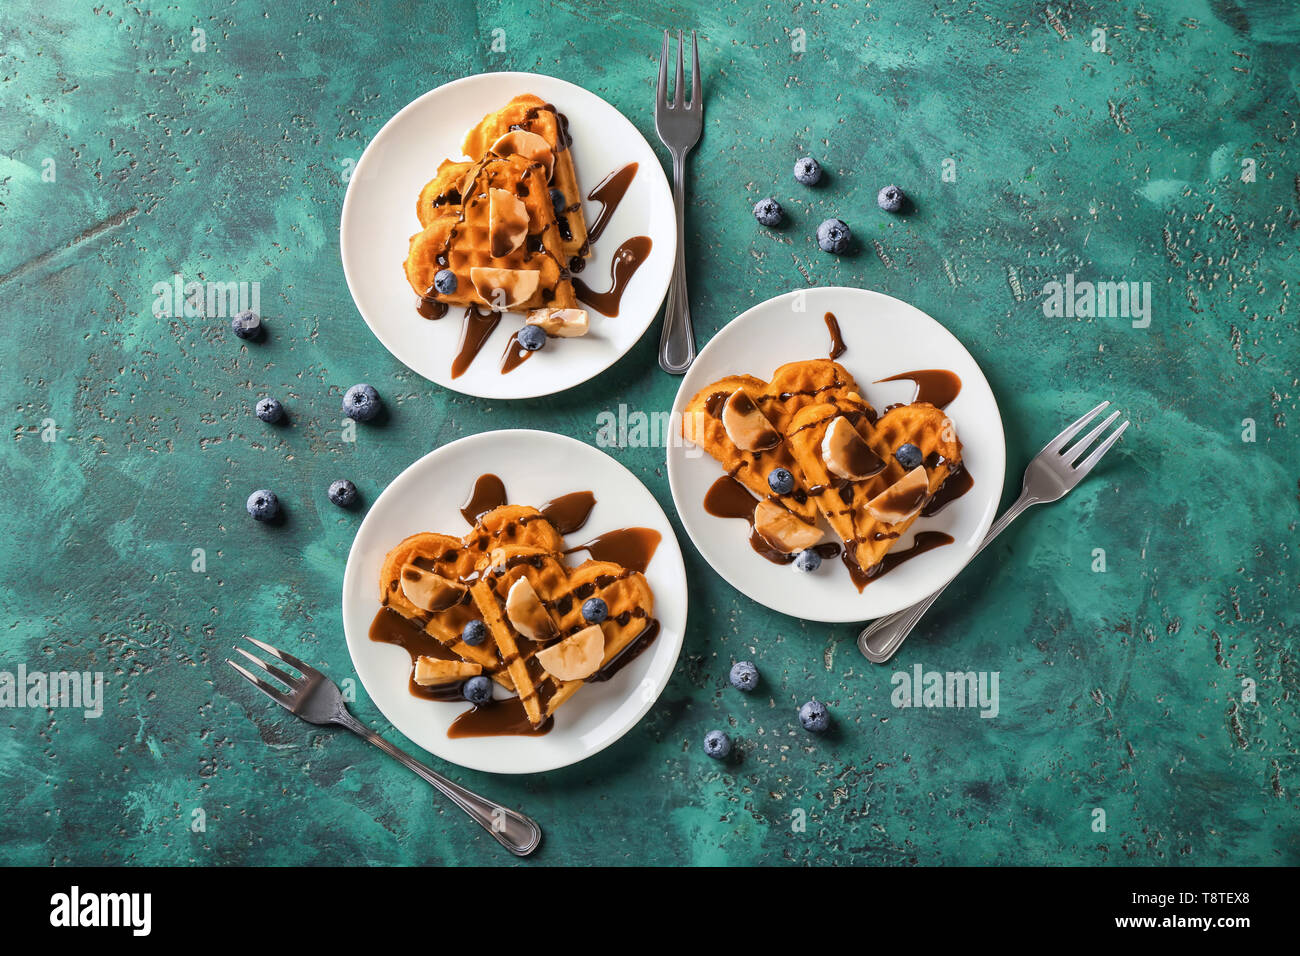 Heart shaped waffles with banana slices and chocolate sauce on color background - Stock Image